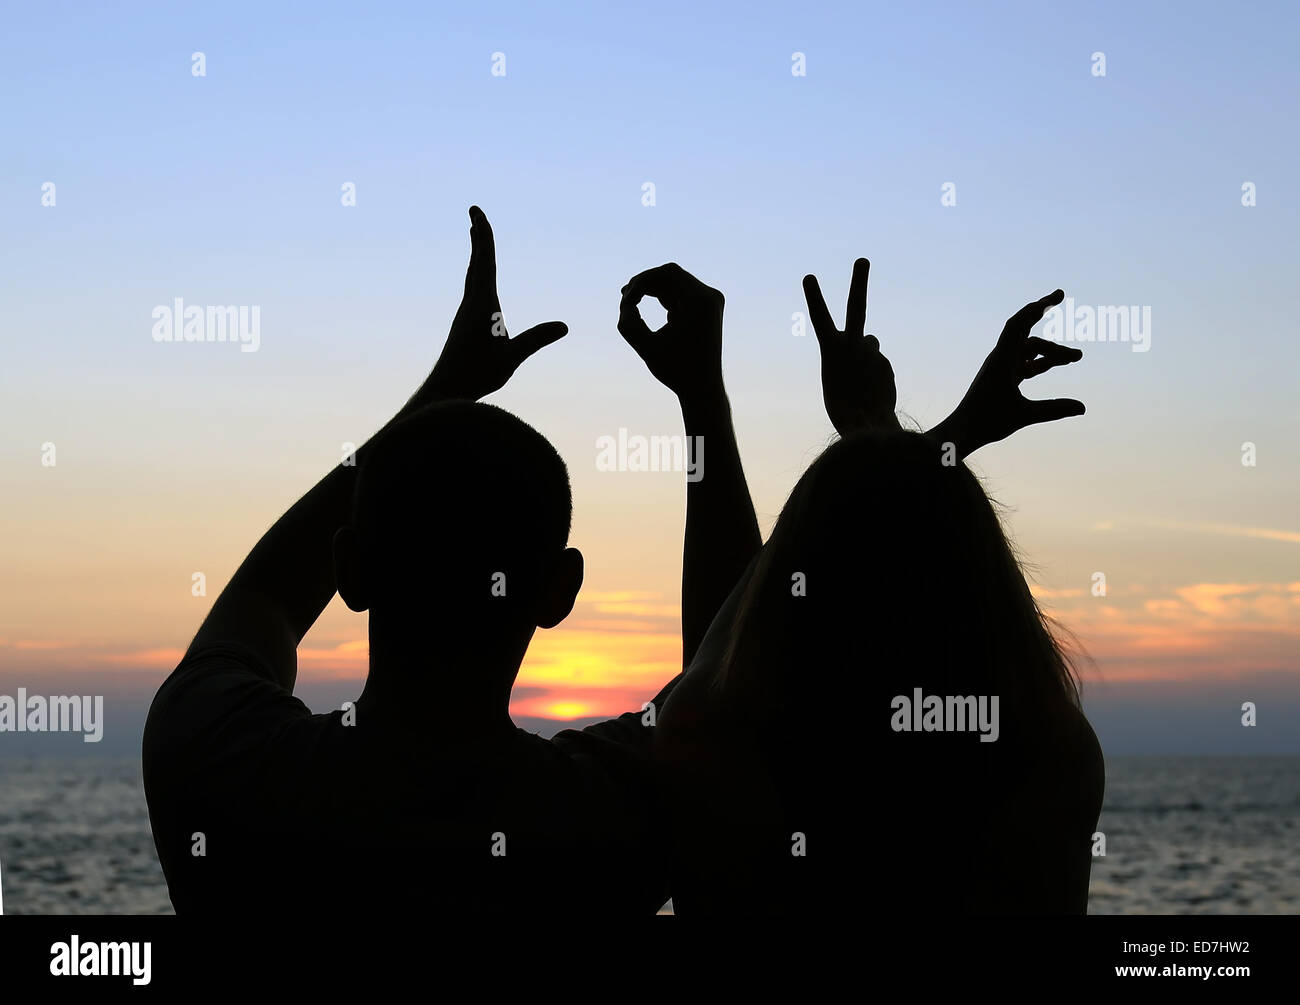 A Silhouette Of A Romantic Couple Holding Their Hands Spelling The Word Love On